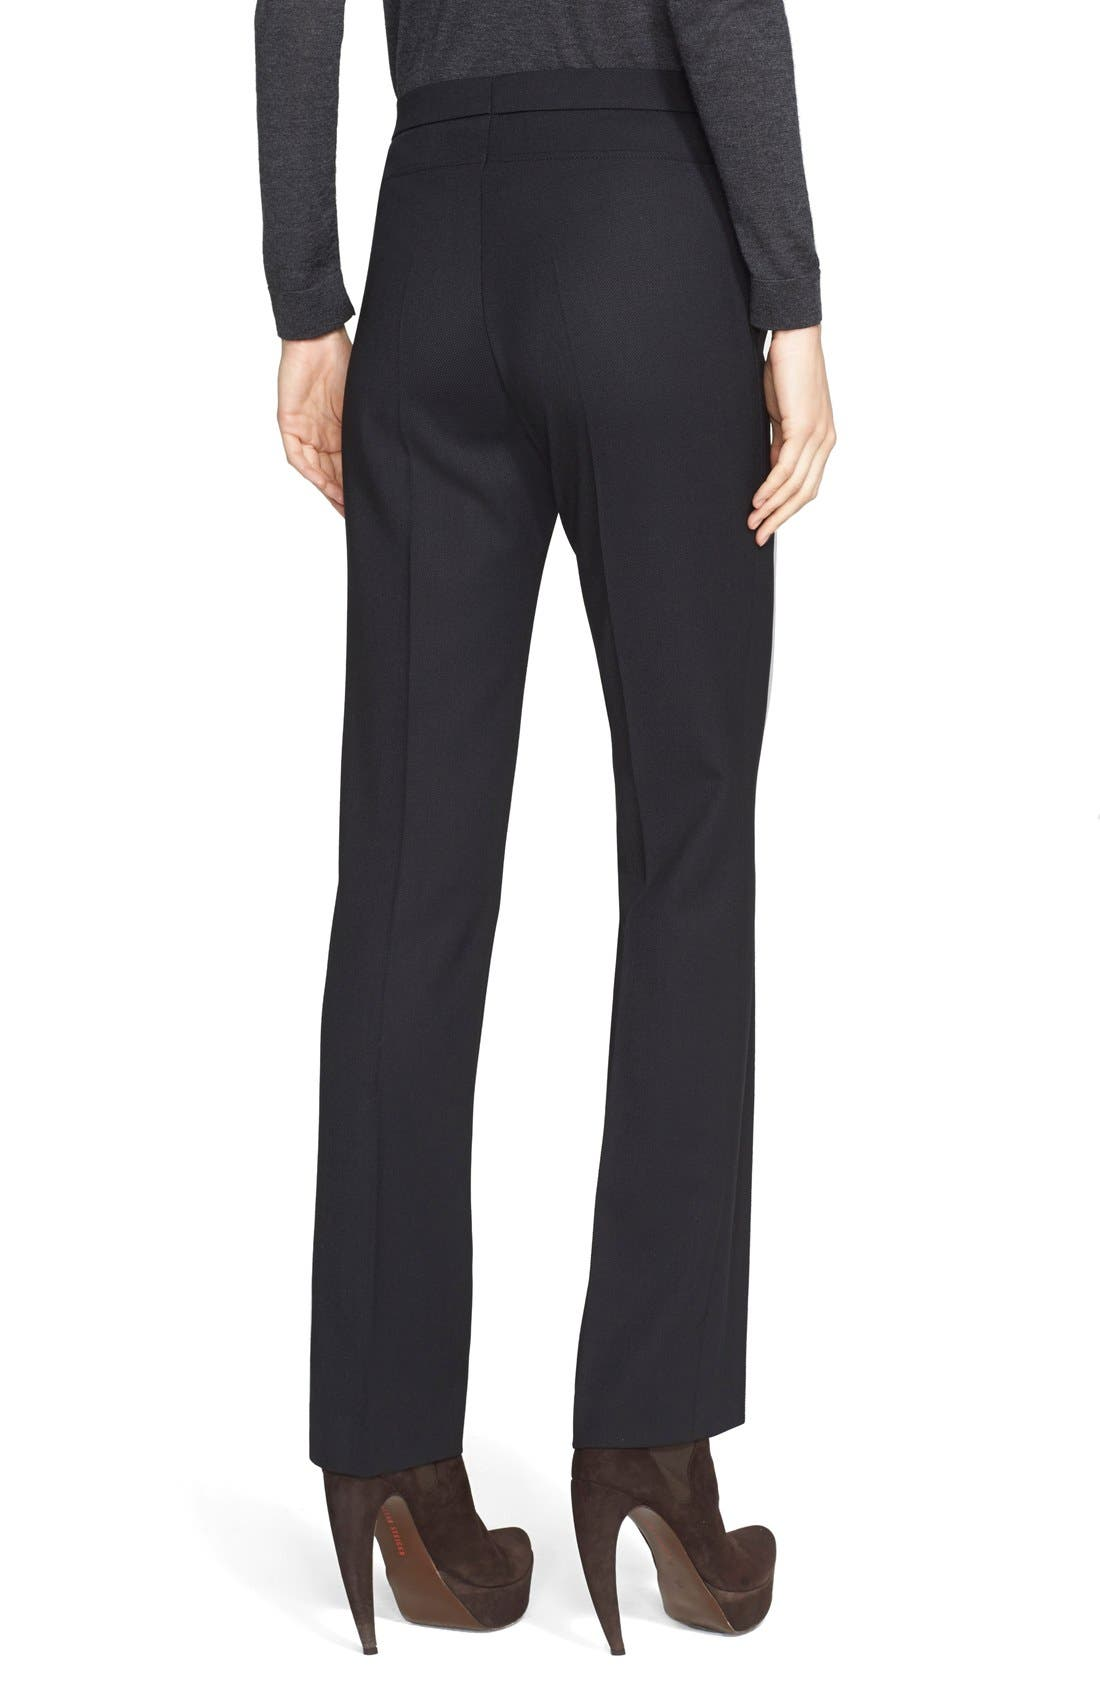 'Francoise' Stretch Gabardine Pants,                             Alternate thumbnail 2, color,                             BLACK